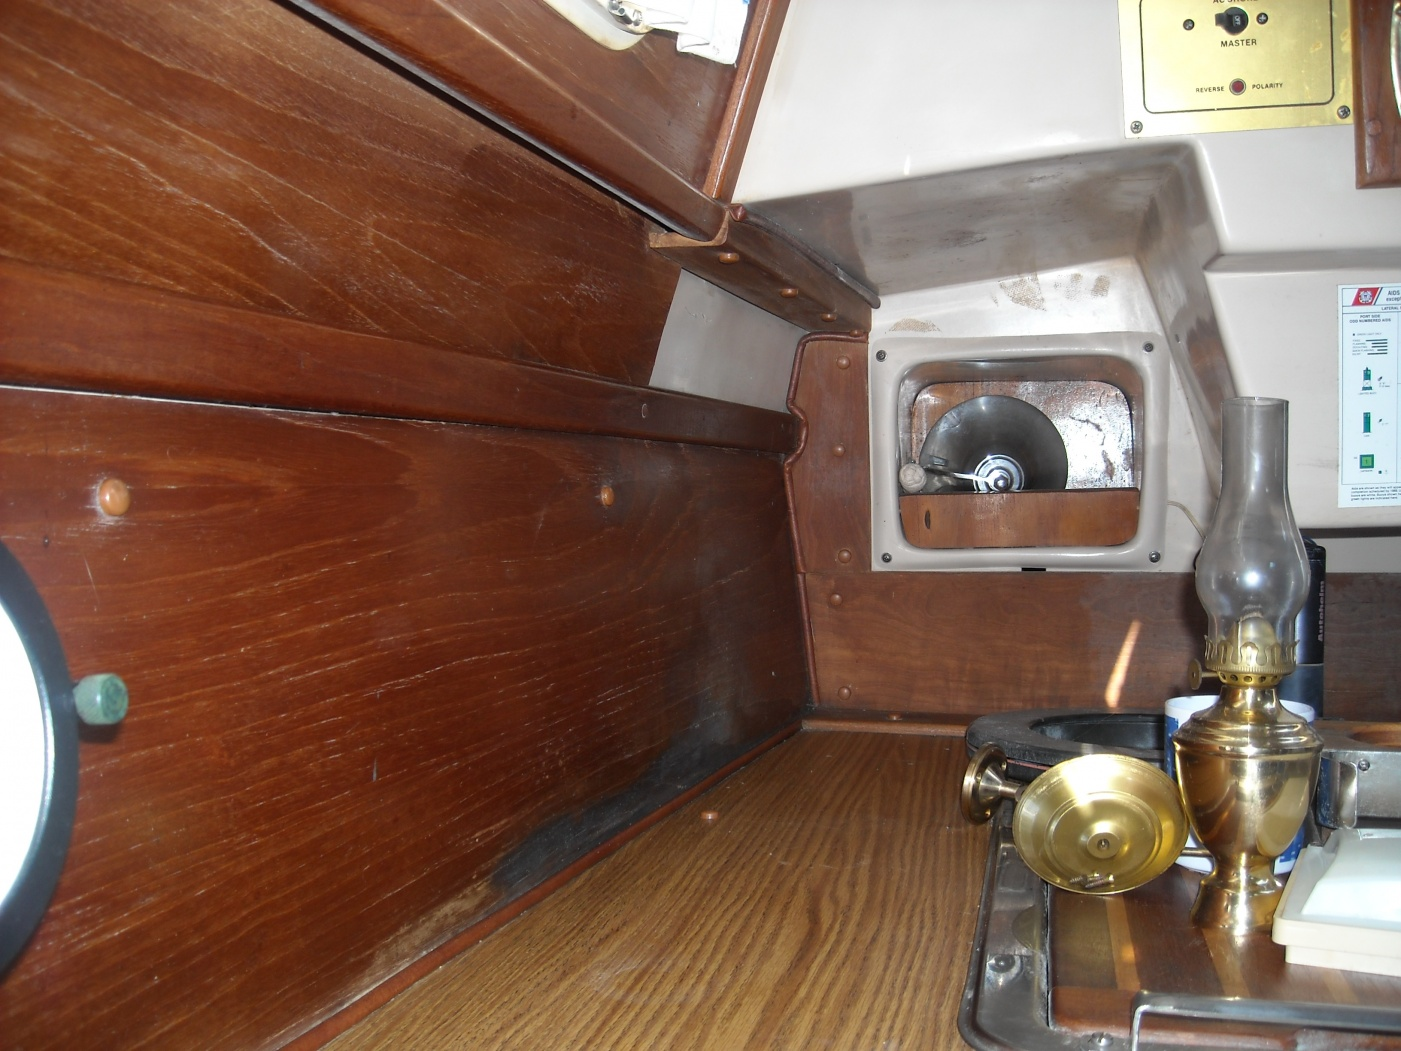 Click image for larger version  Name:HULL DECK SEAM 040.jpg Views:84 Size:420.0 KB ID:36904